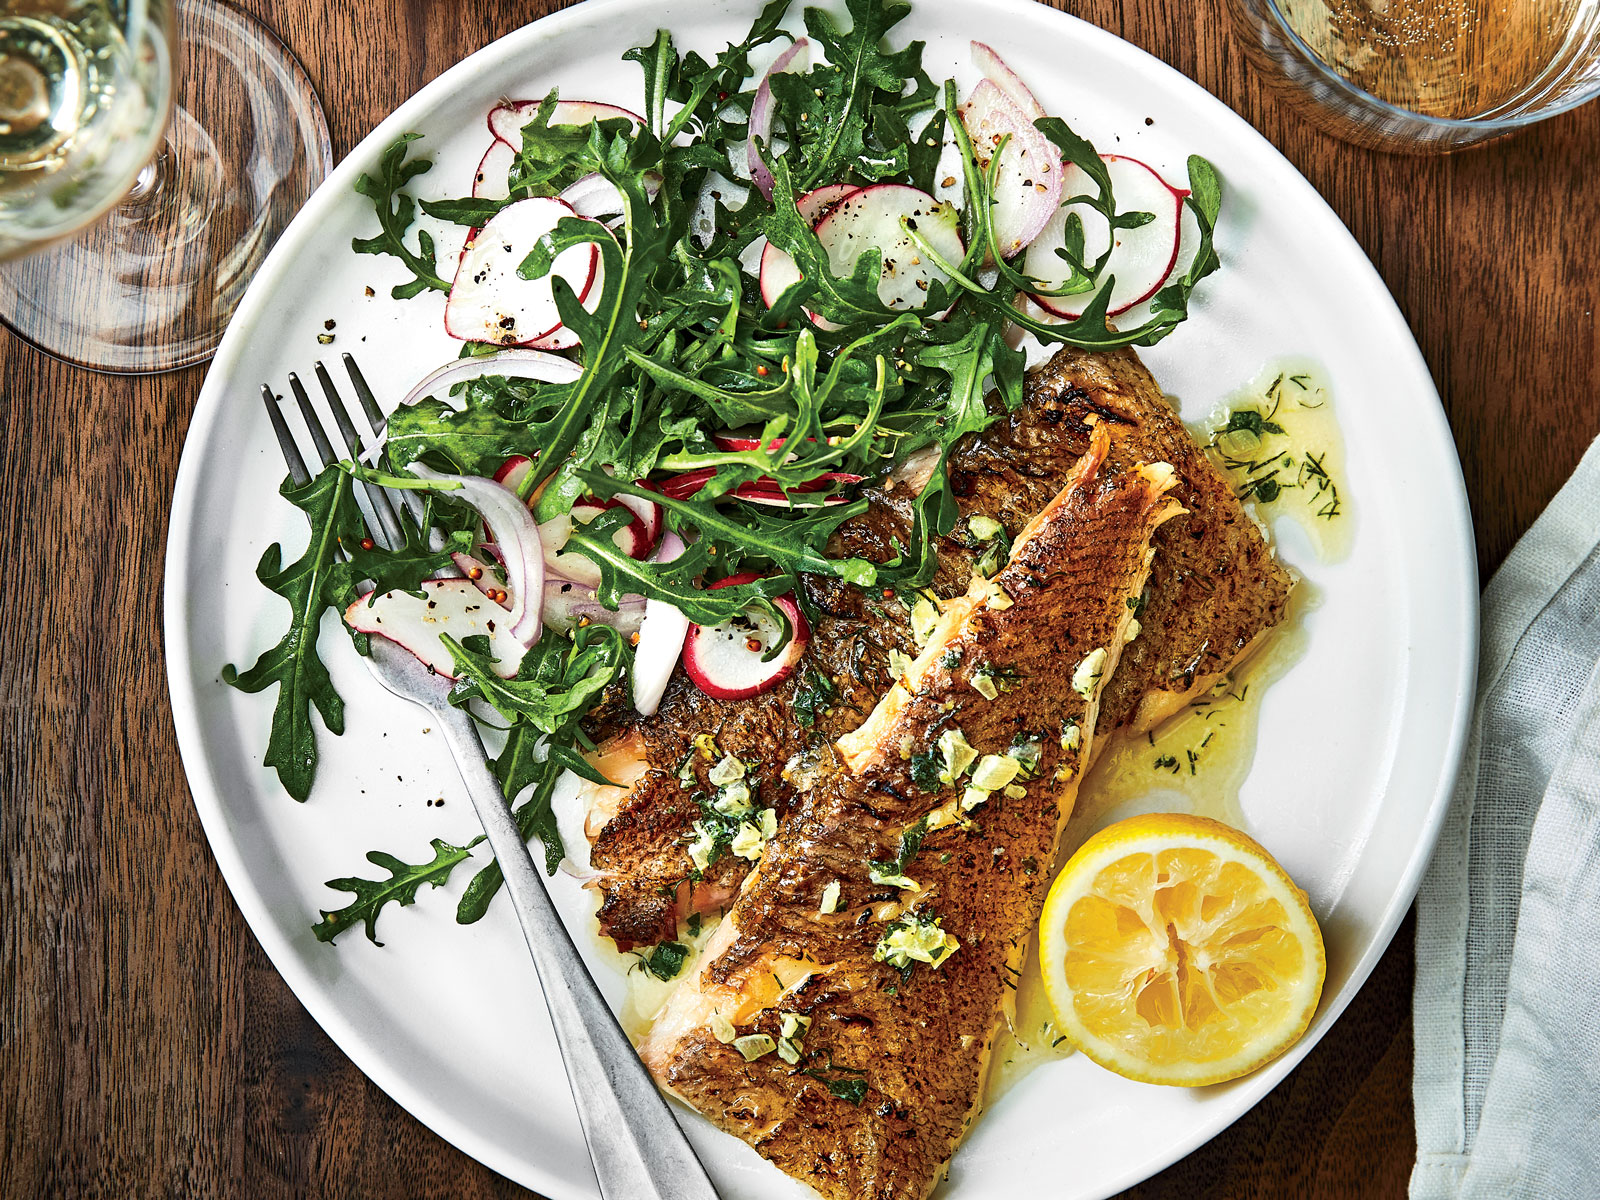 Grilled Whole Flatfish with Lemon-Herb Butter